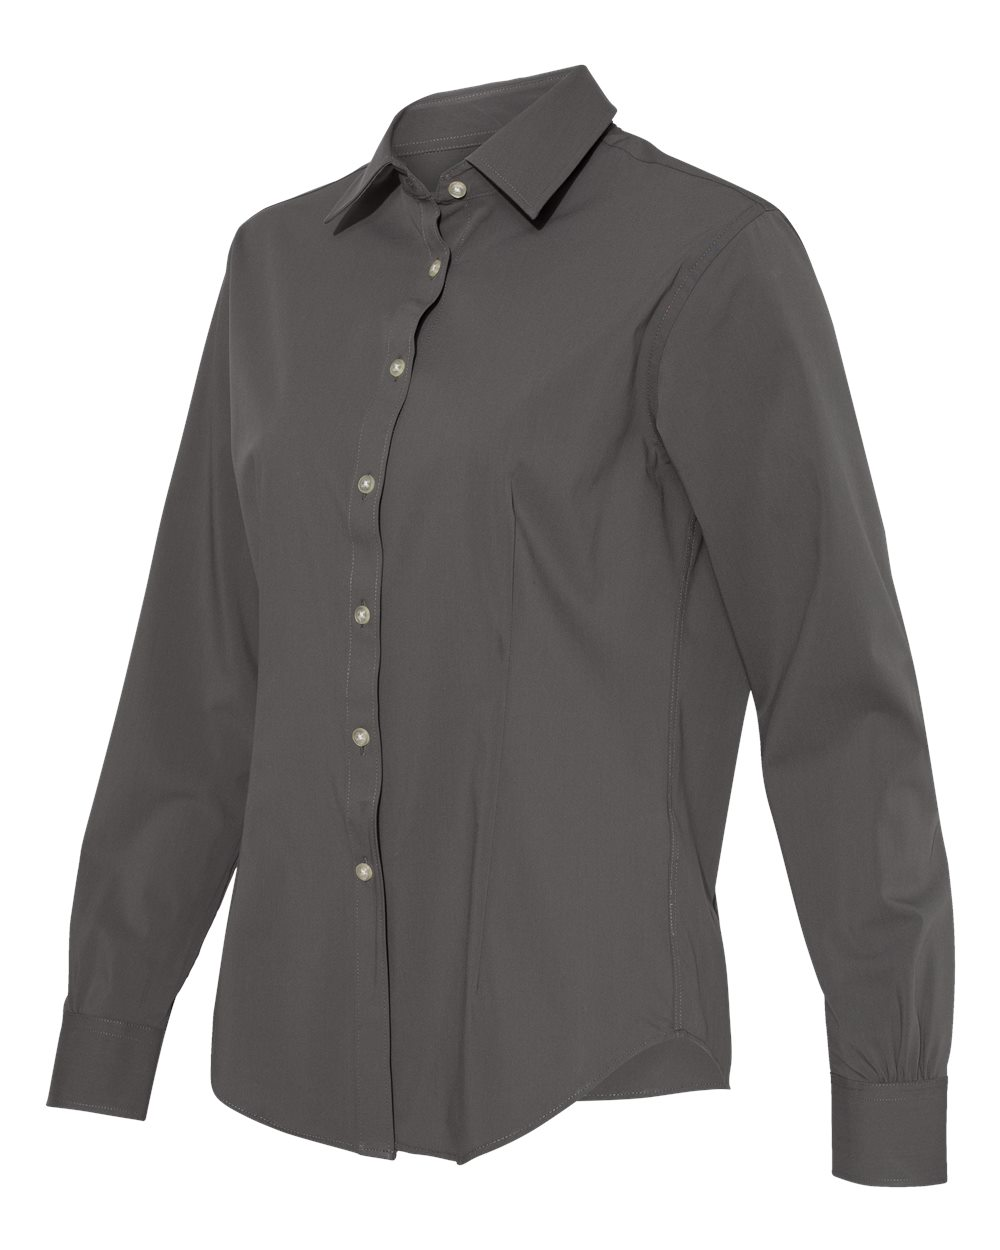 Van Heusen 13V0462 - Women's Flex 3 Shirt With Four-...